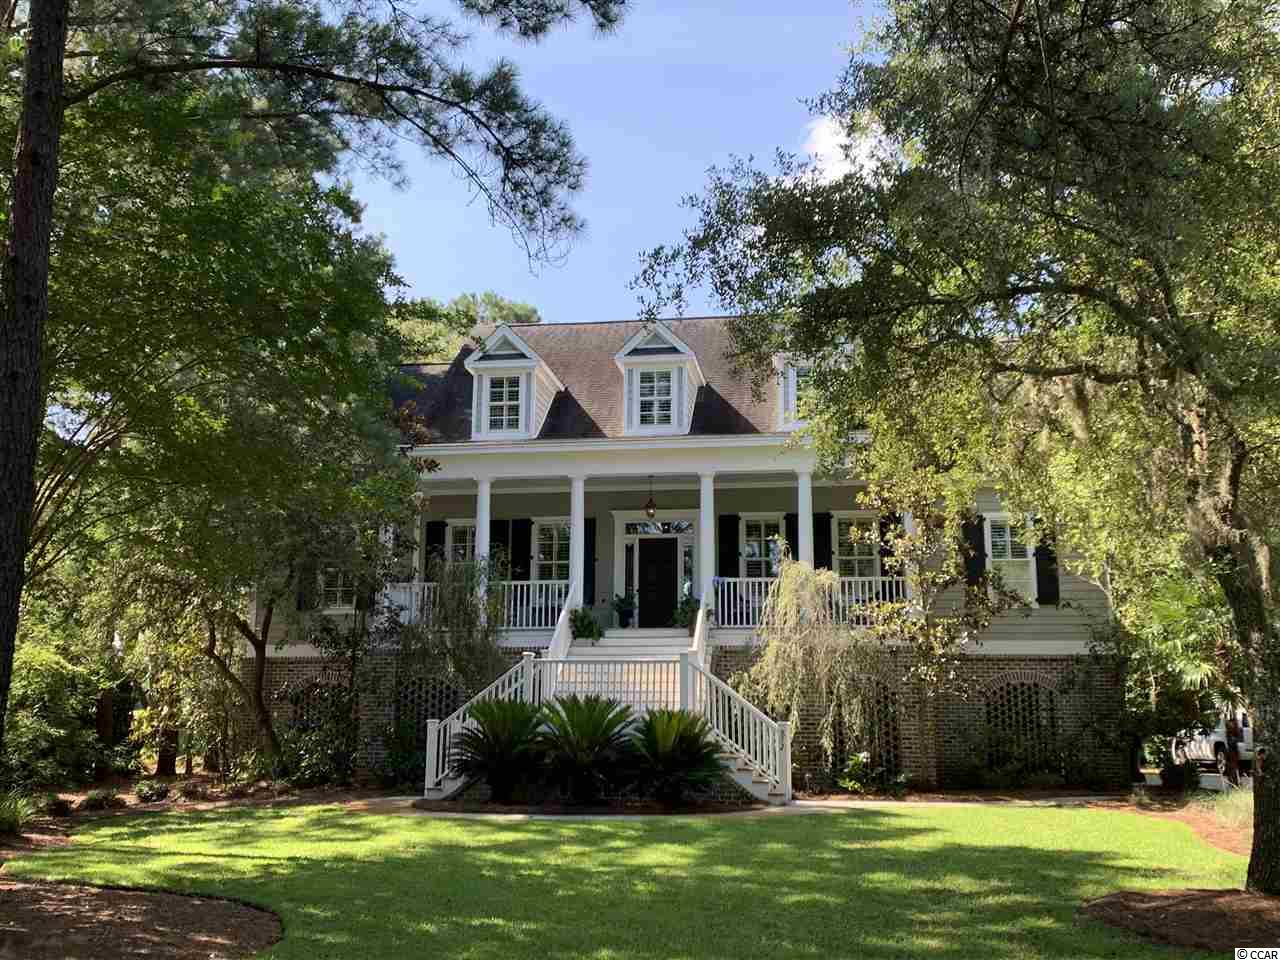 This is a classic Lowcountry home on the golf course in DeBordieu Colony. Located on a quiet street, the both the golf club and beach are a short golf cart ride away.